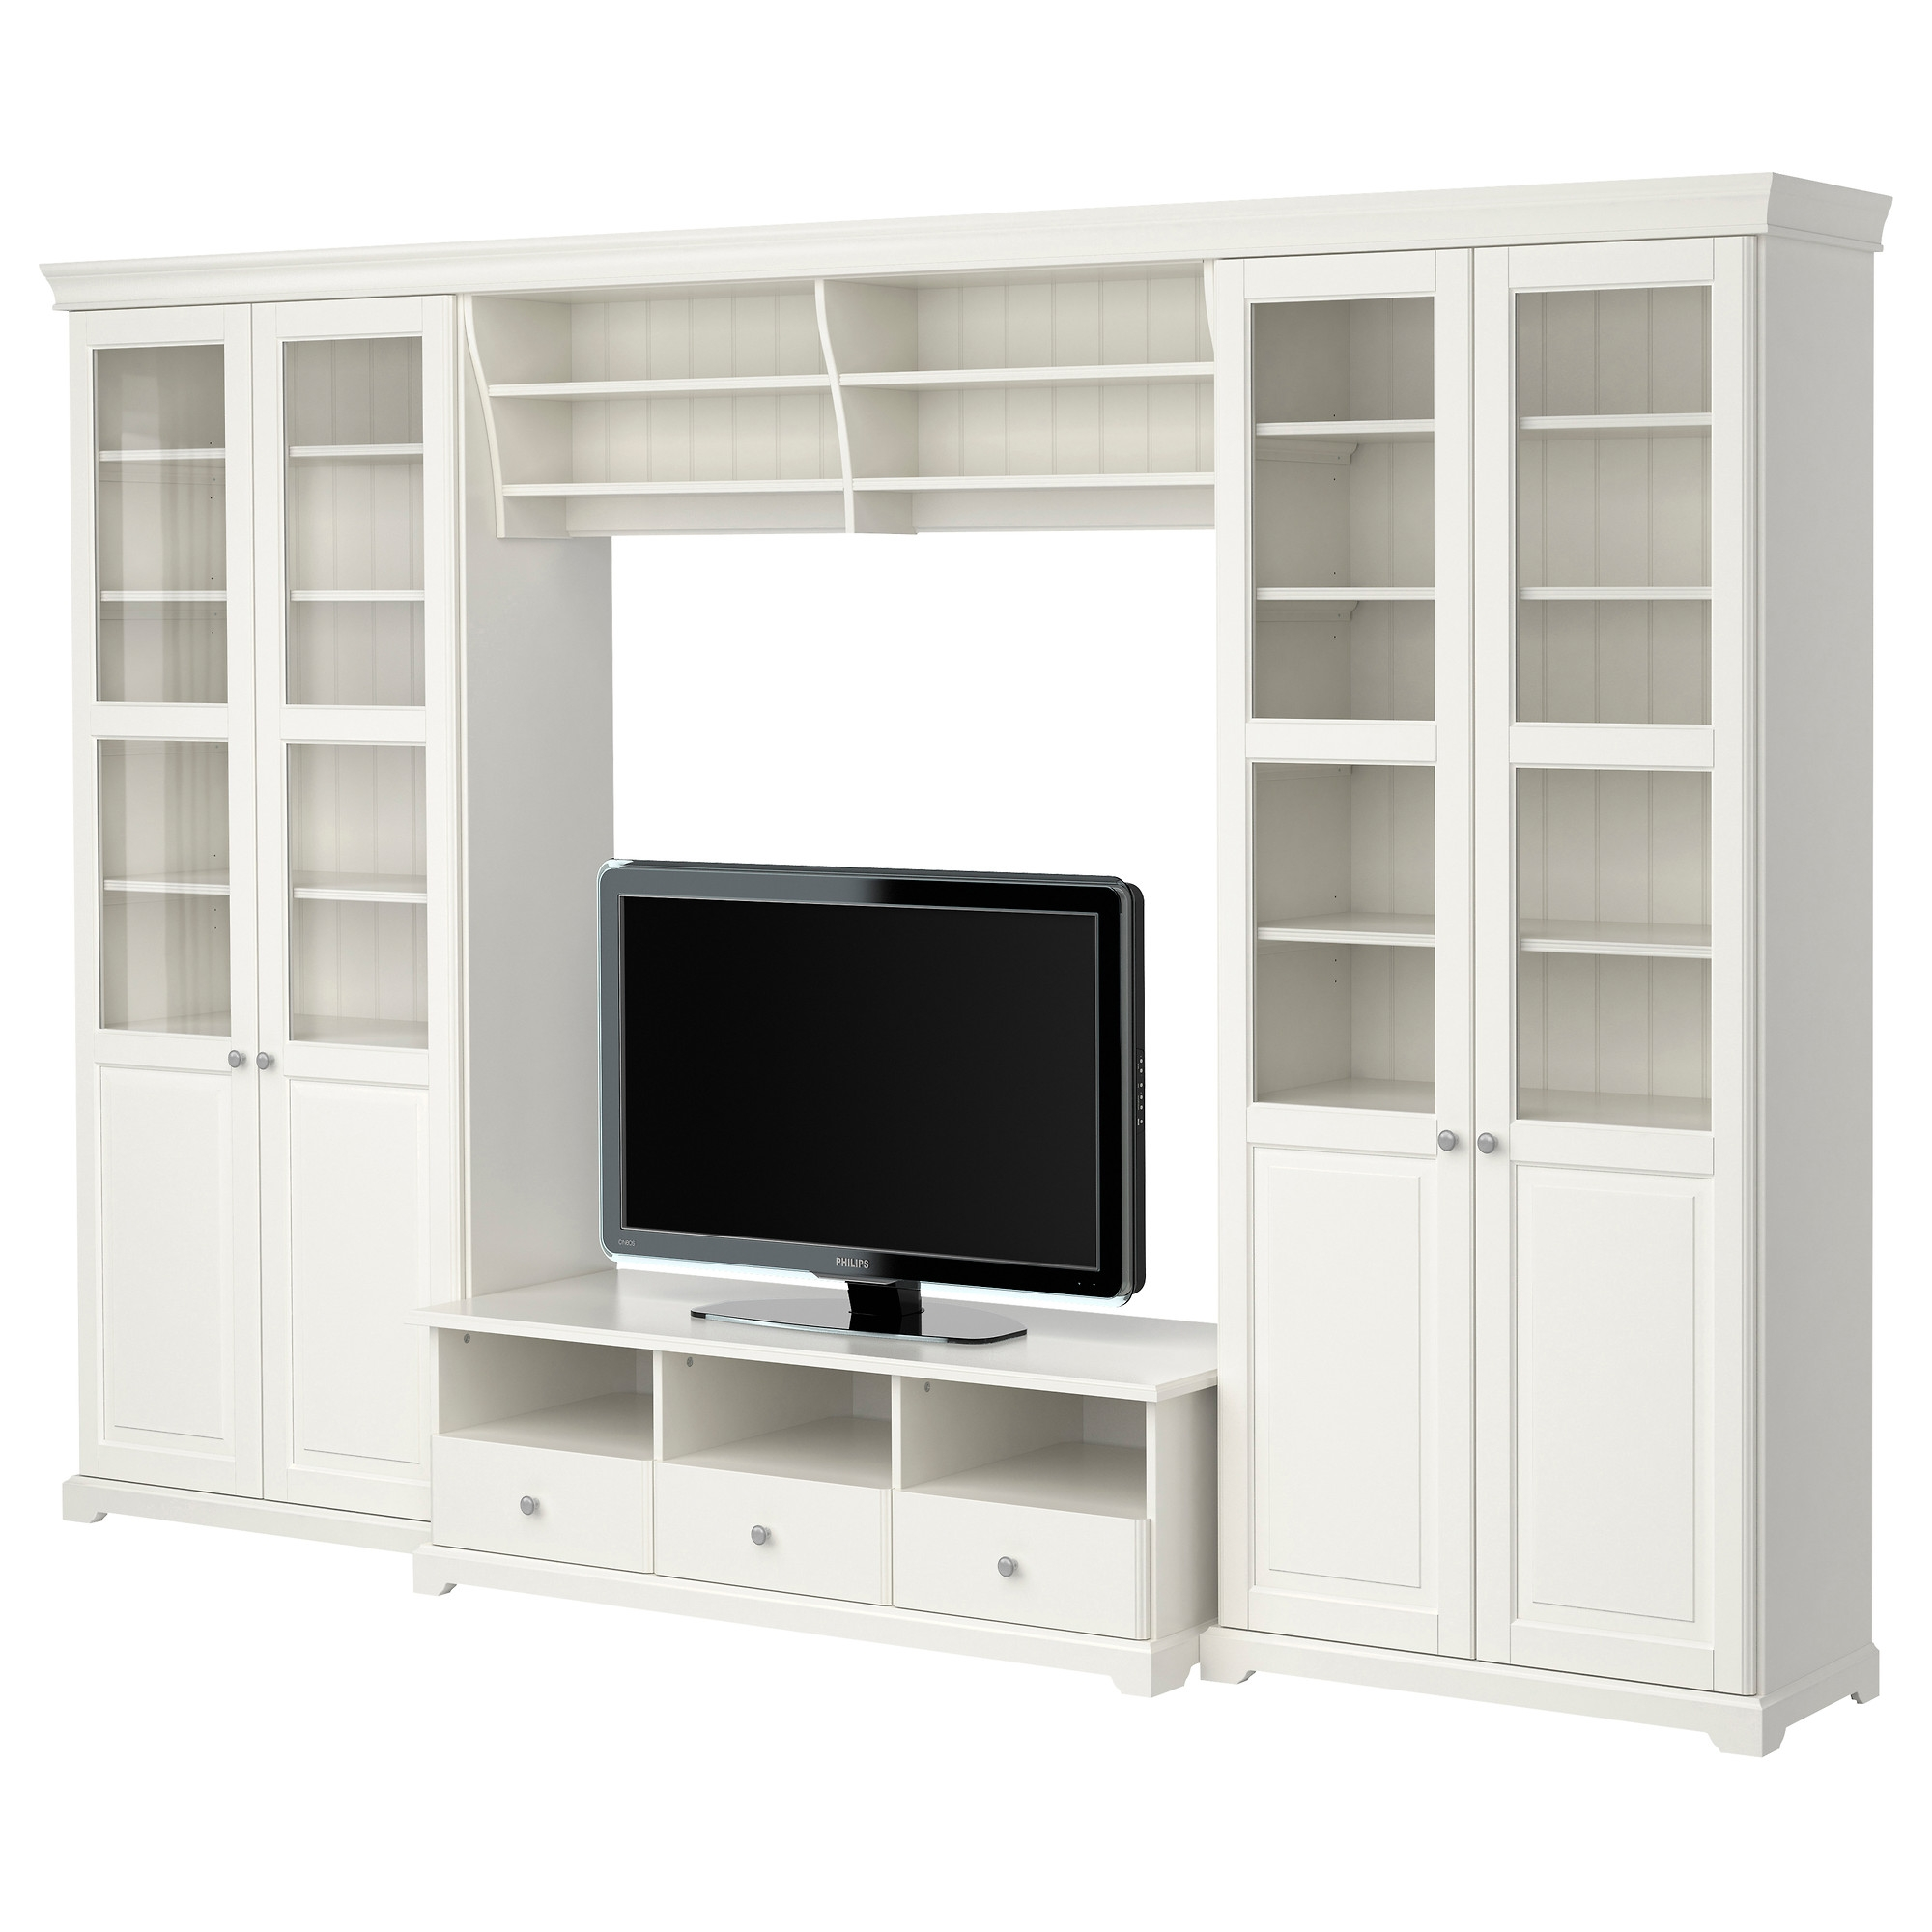 Liatorp Tv Storage Combination White 337×214 Cm Ikea With Tv Bookcase Combination (#10 of 15)